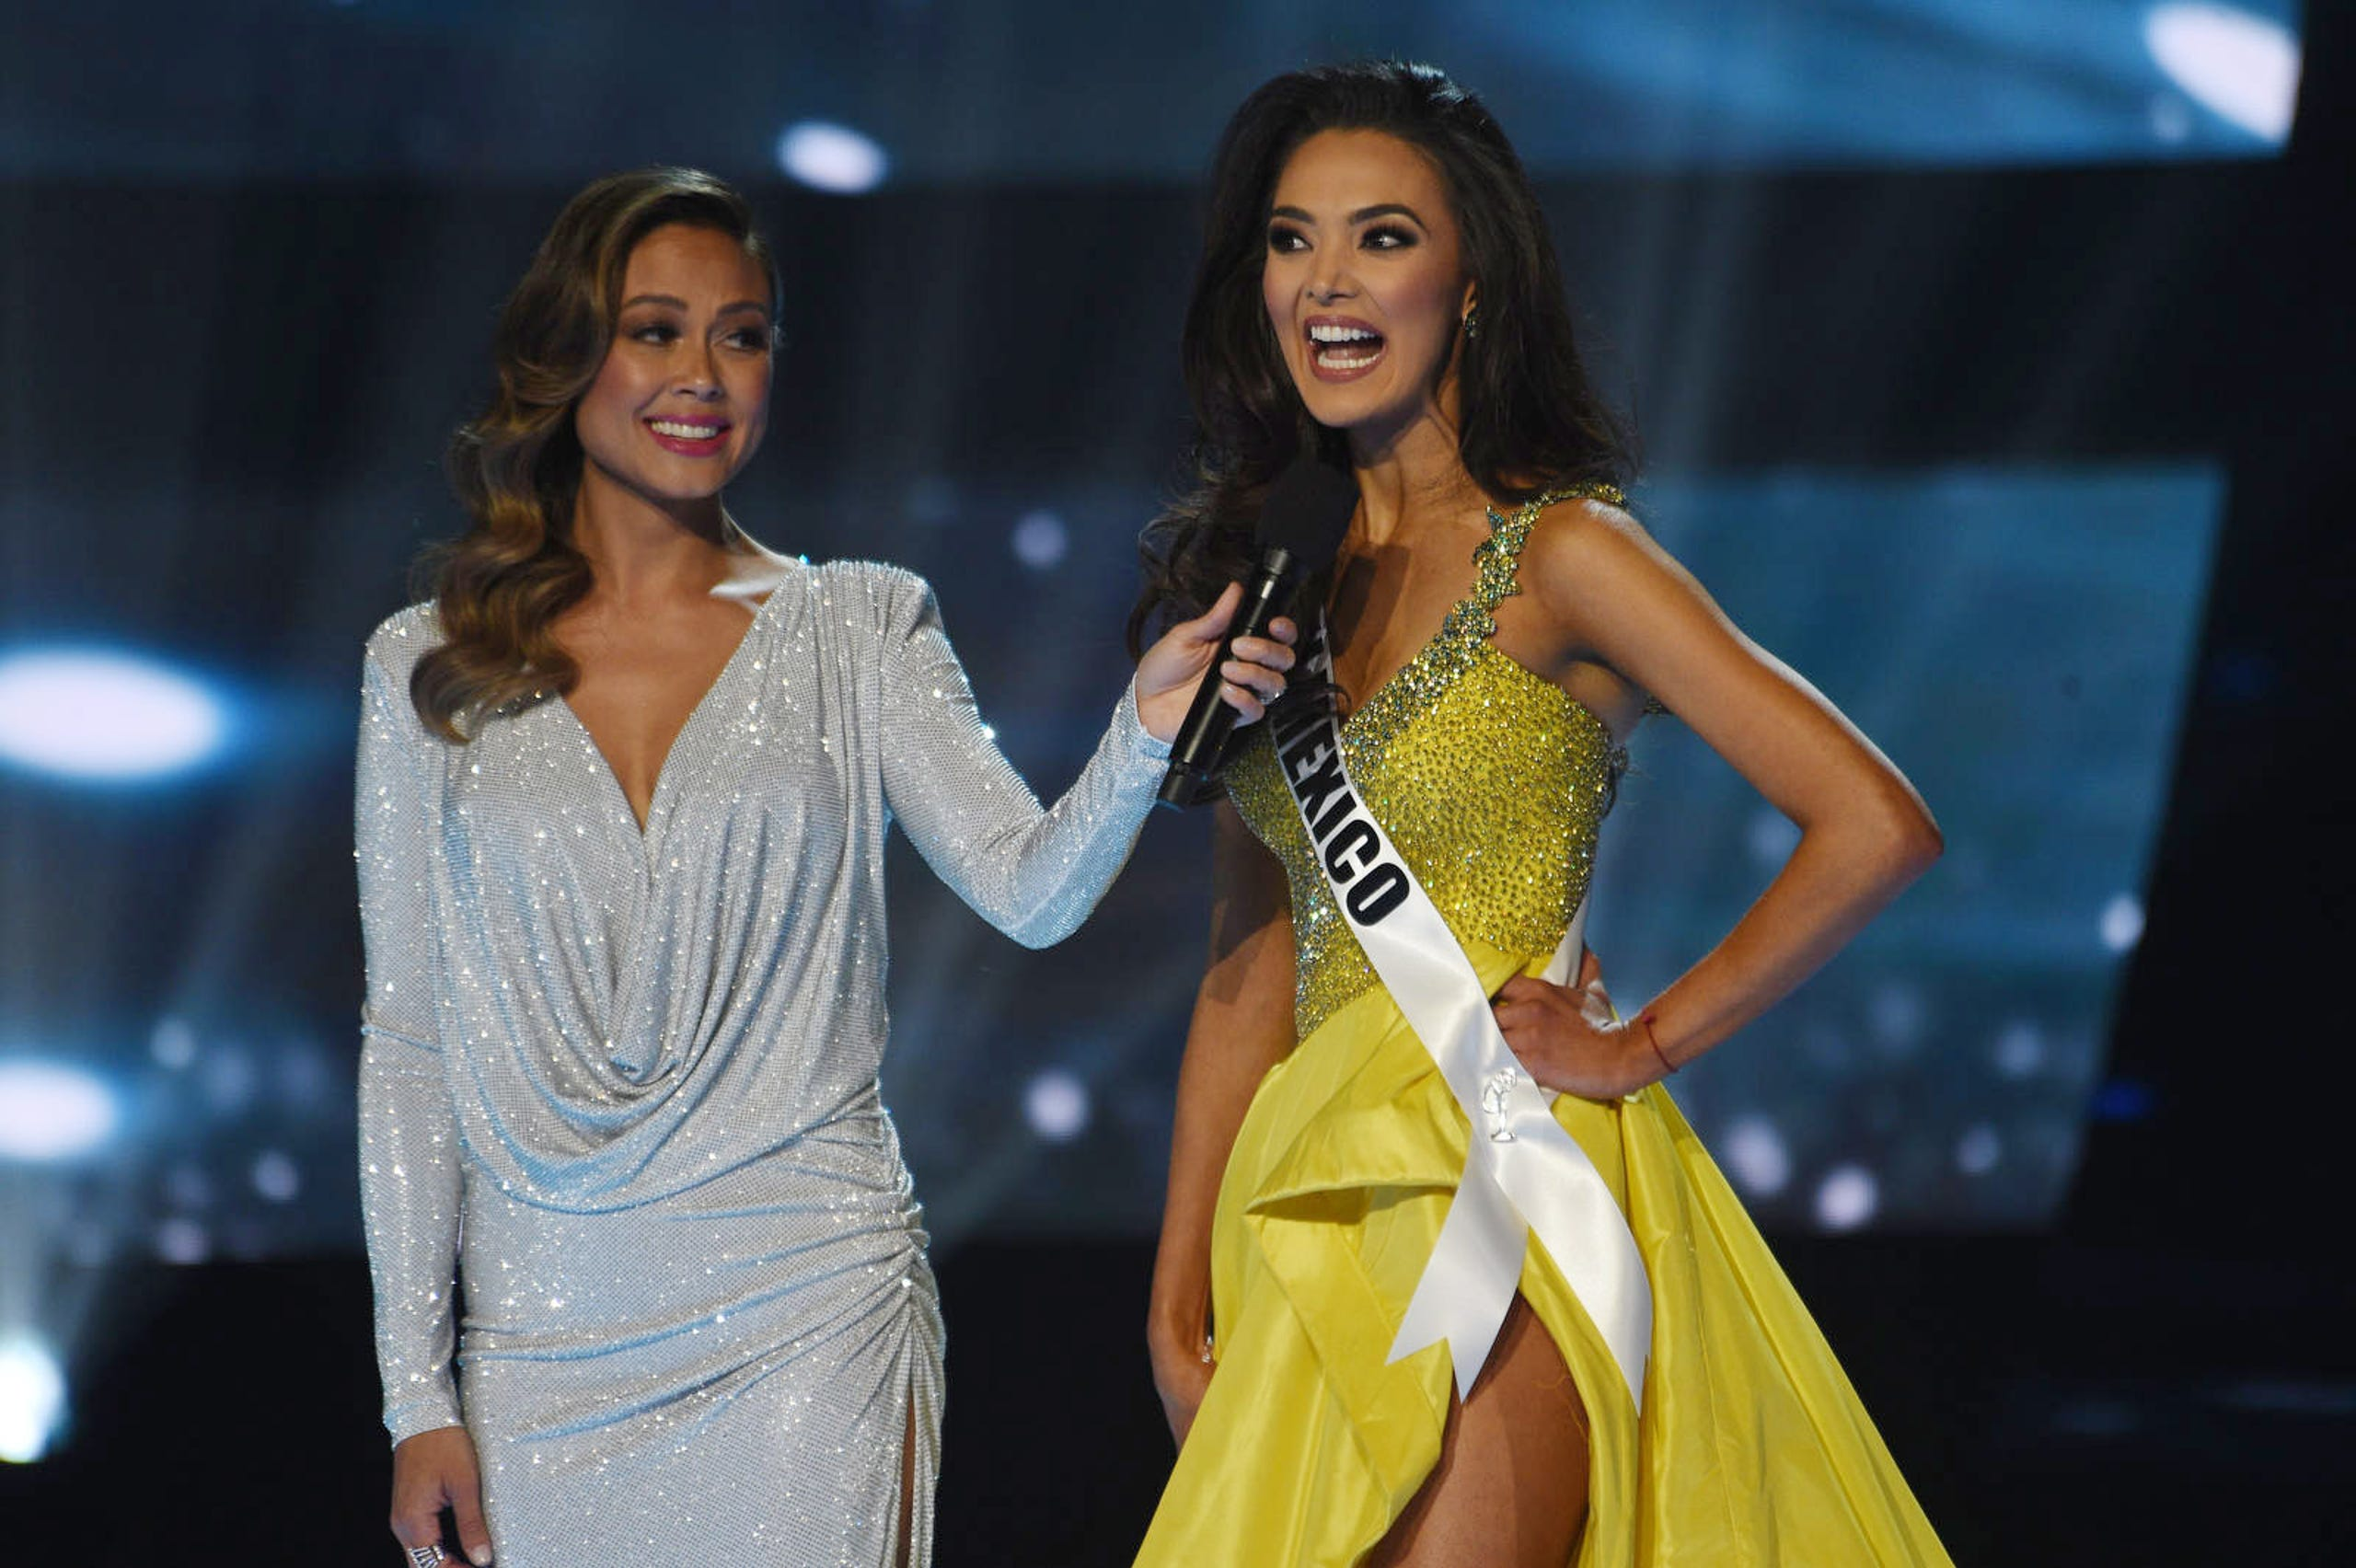 Miss New Mexico Alejandra Gonzalez answers a question during Miss USA 2019.